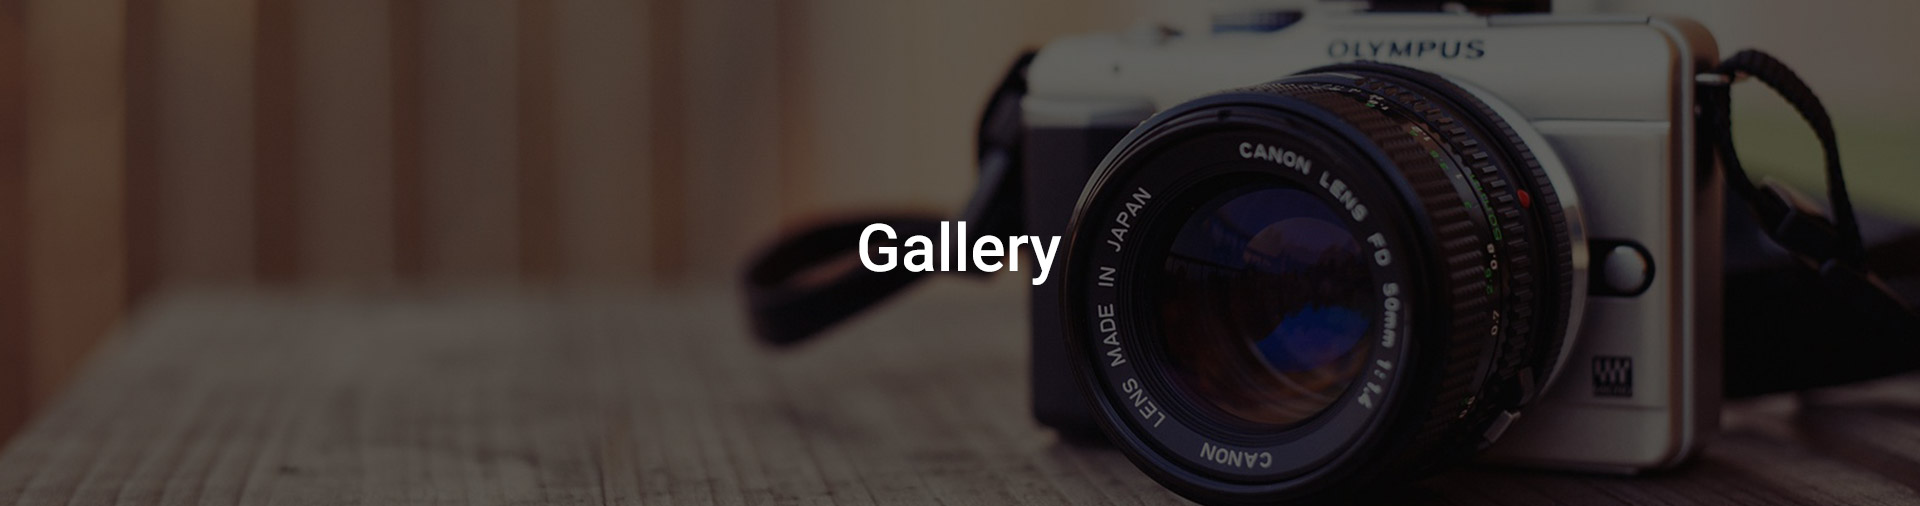 gallery-pommys